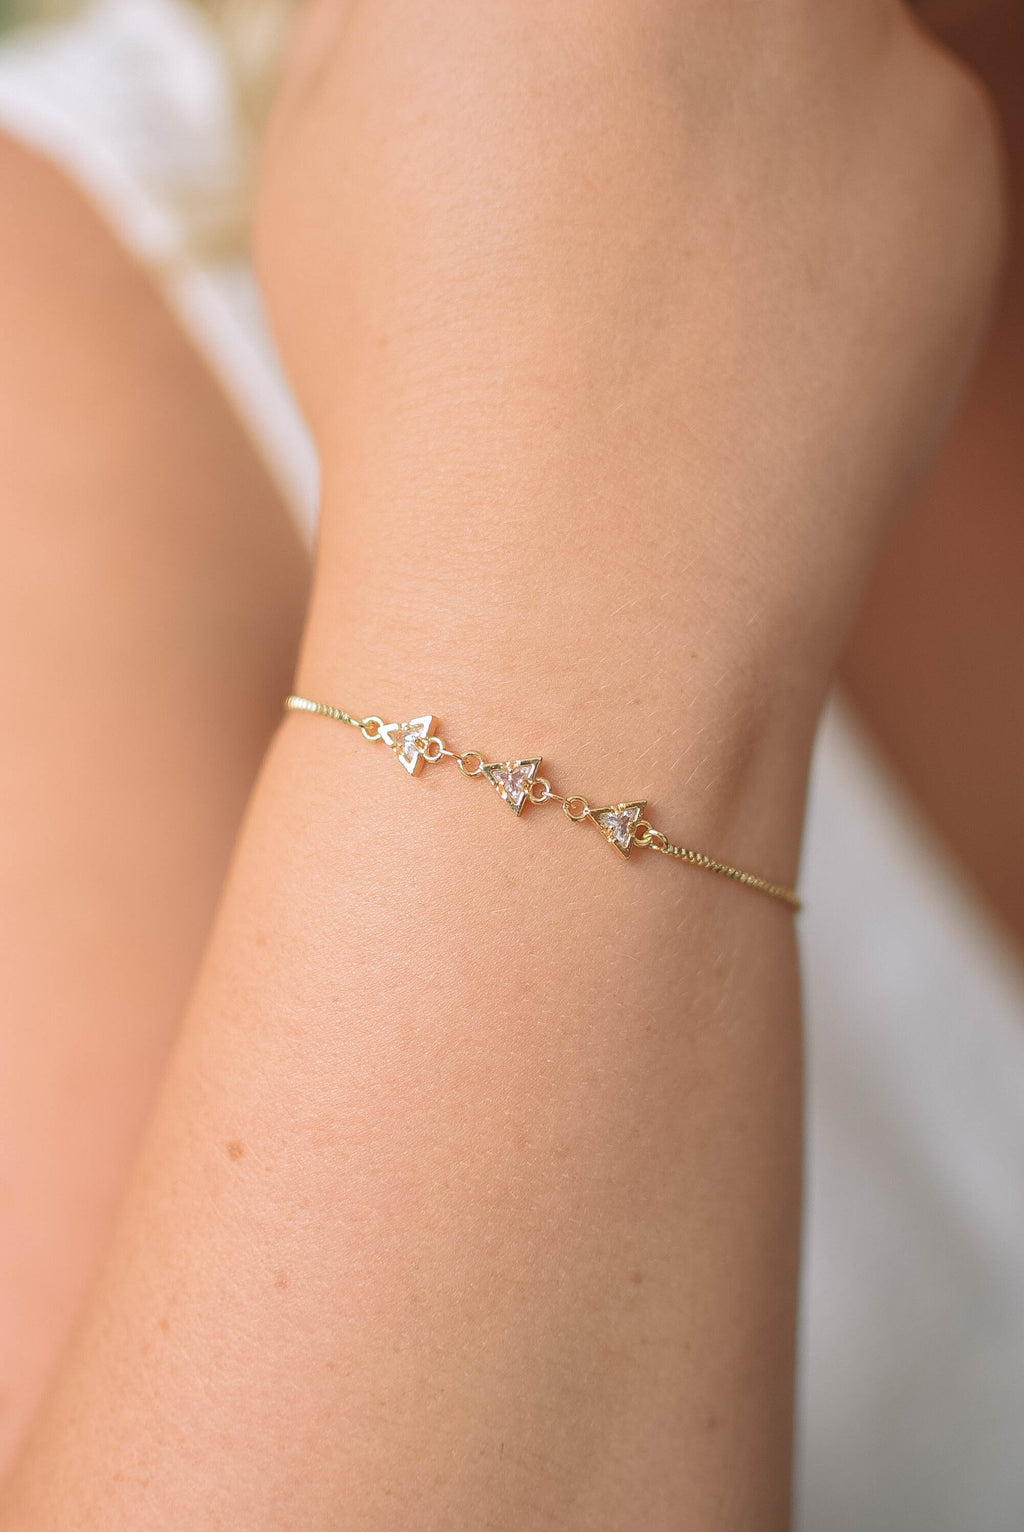 Golden Hour Slider Boho Bracelet - Mint Pop Shop